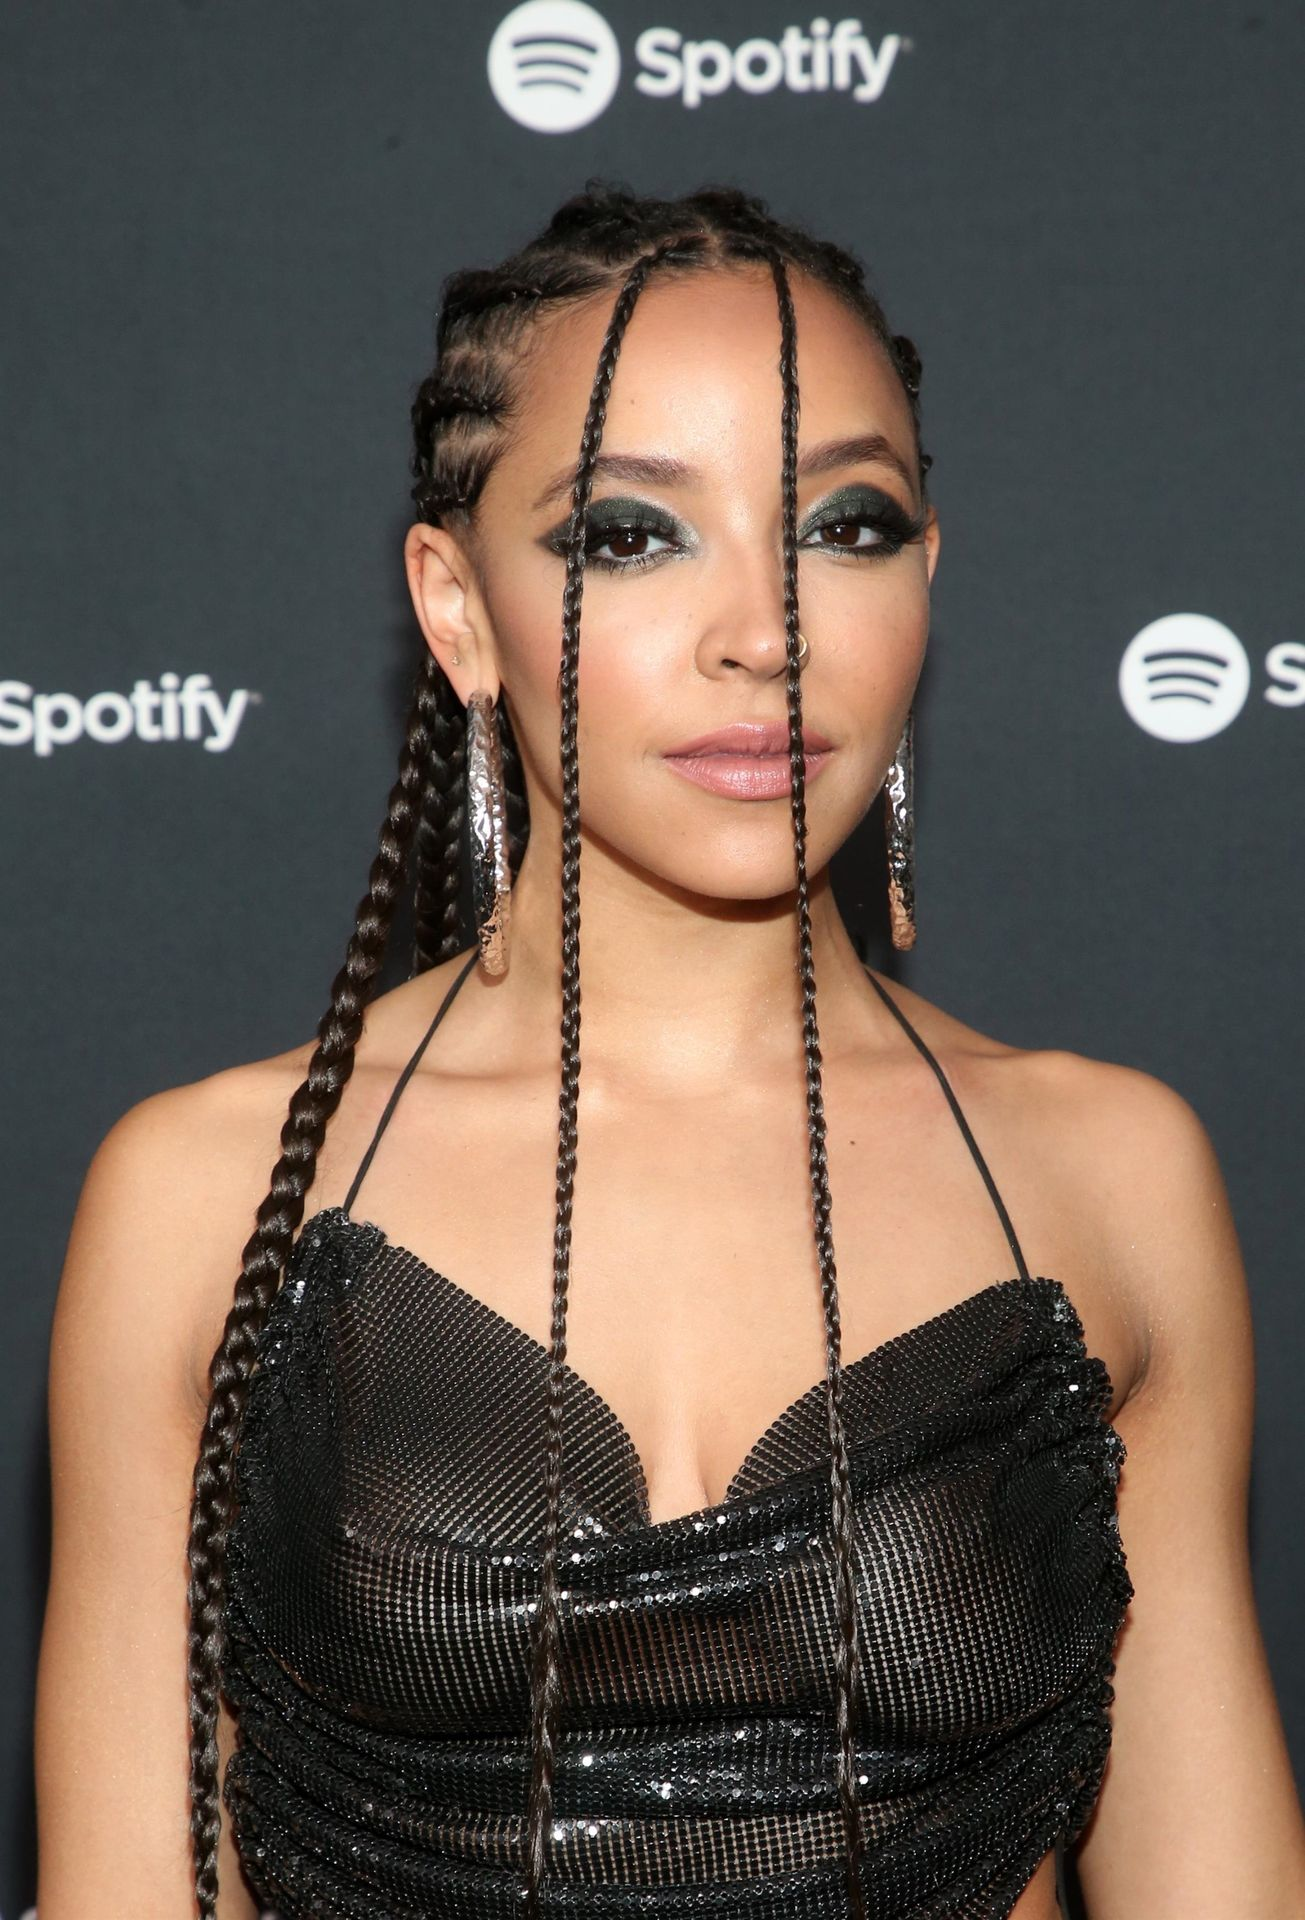 Tinashe Flaunts Her Tits At The Spotify Best New Artist Party 0013